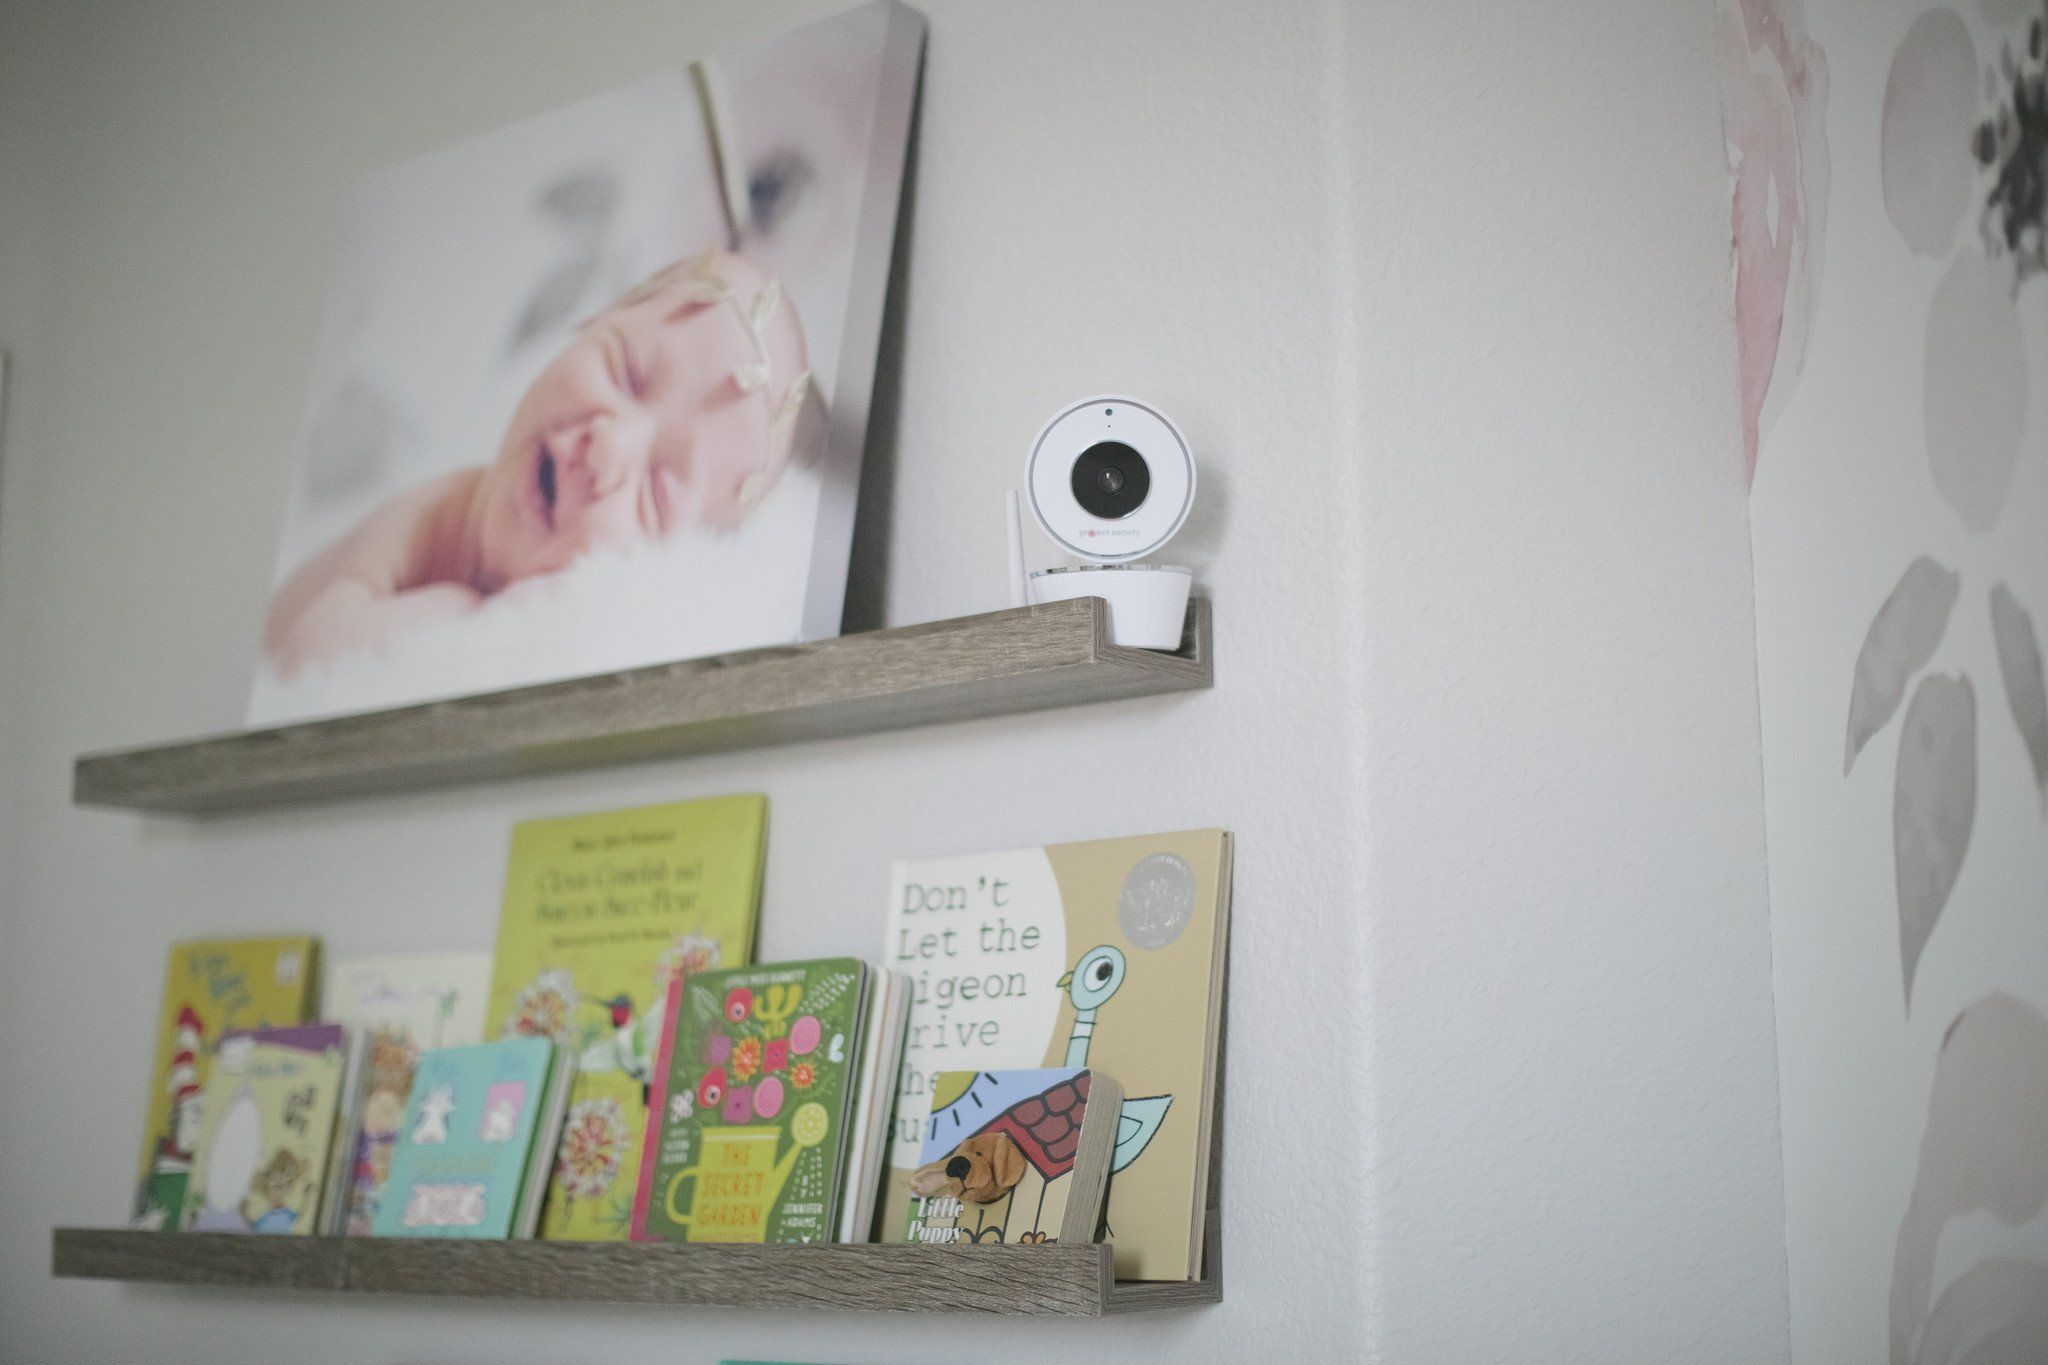 Project Nursery 4.3\u201d Baby Monitor System with 1.5\